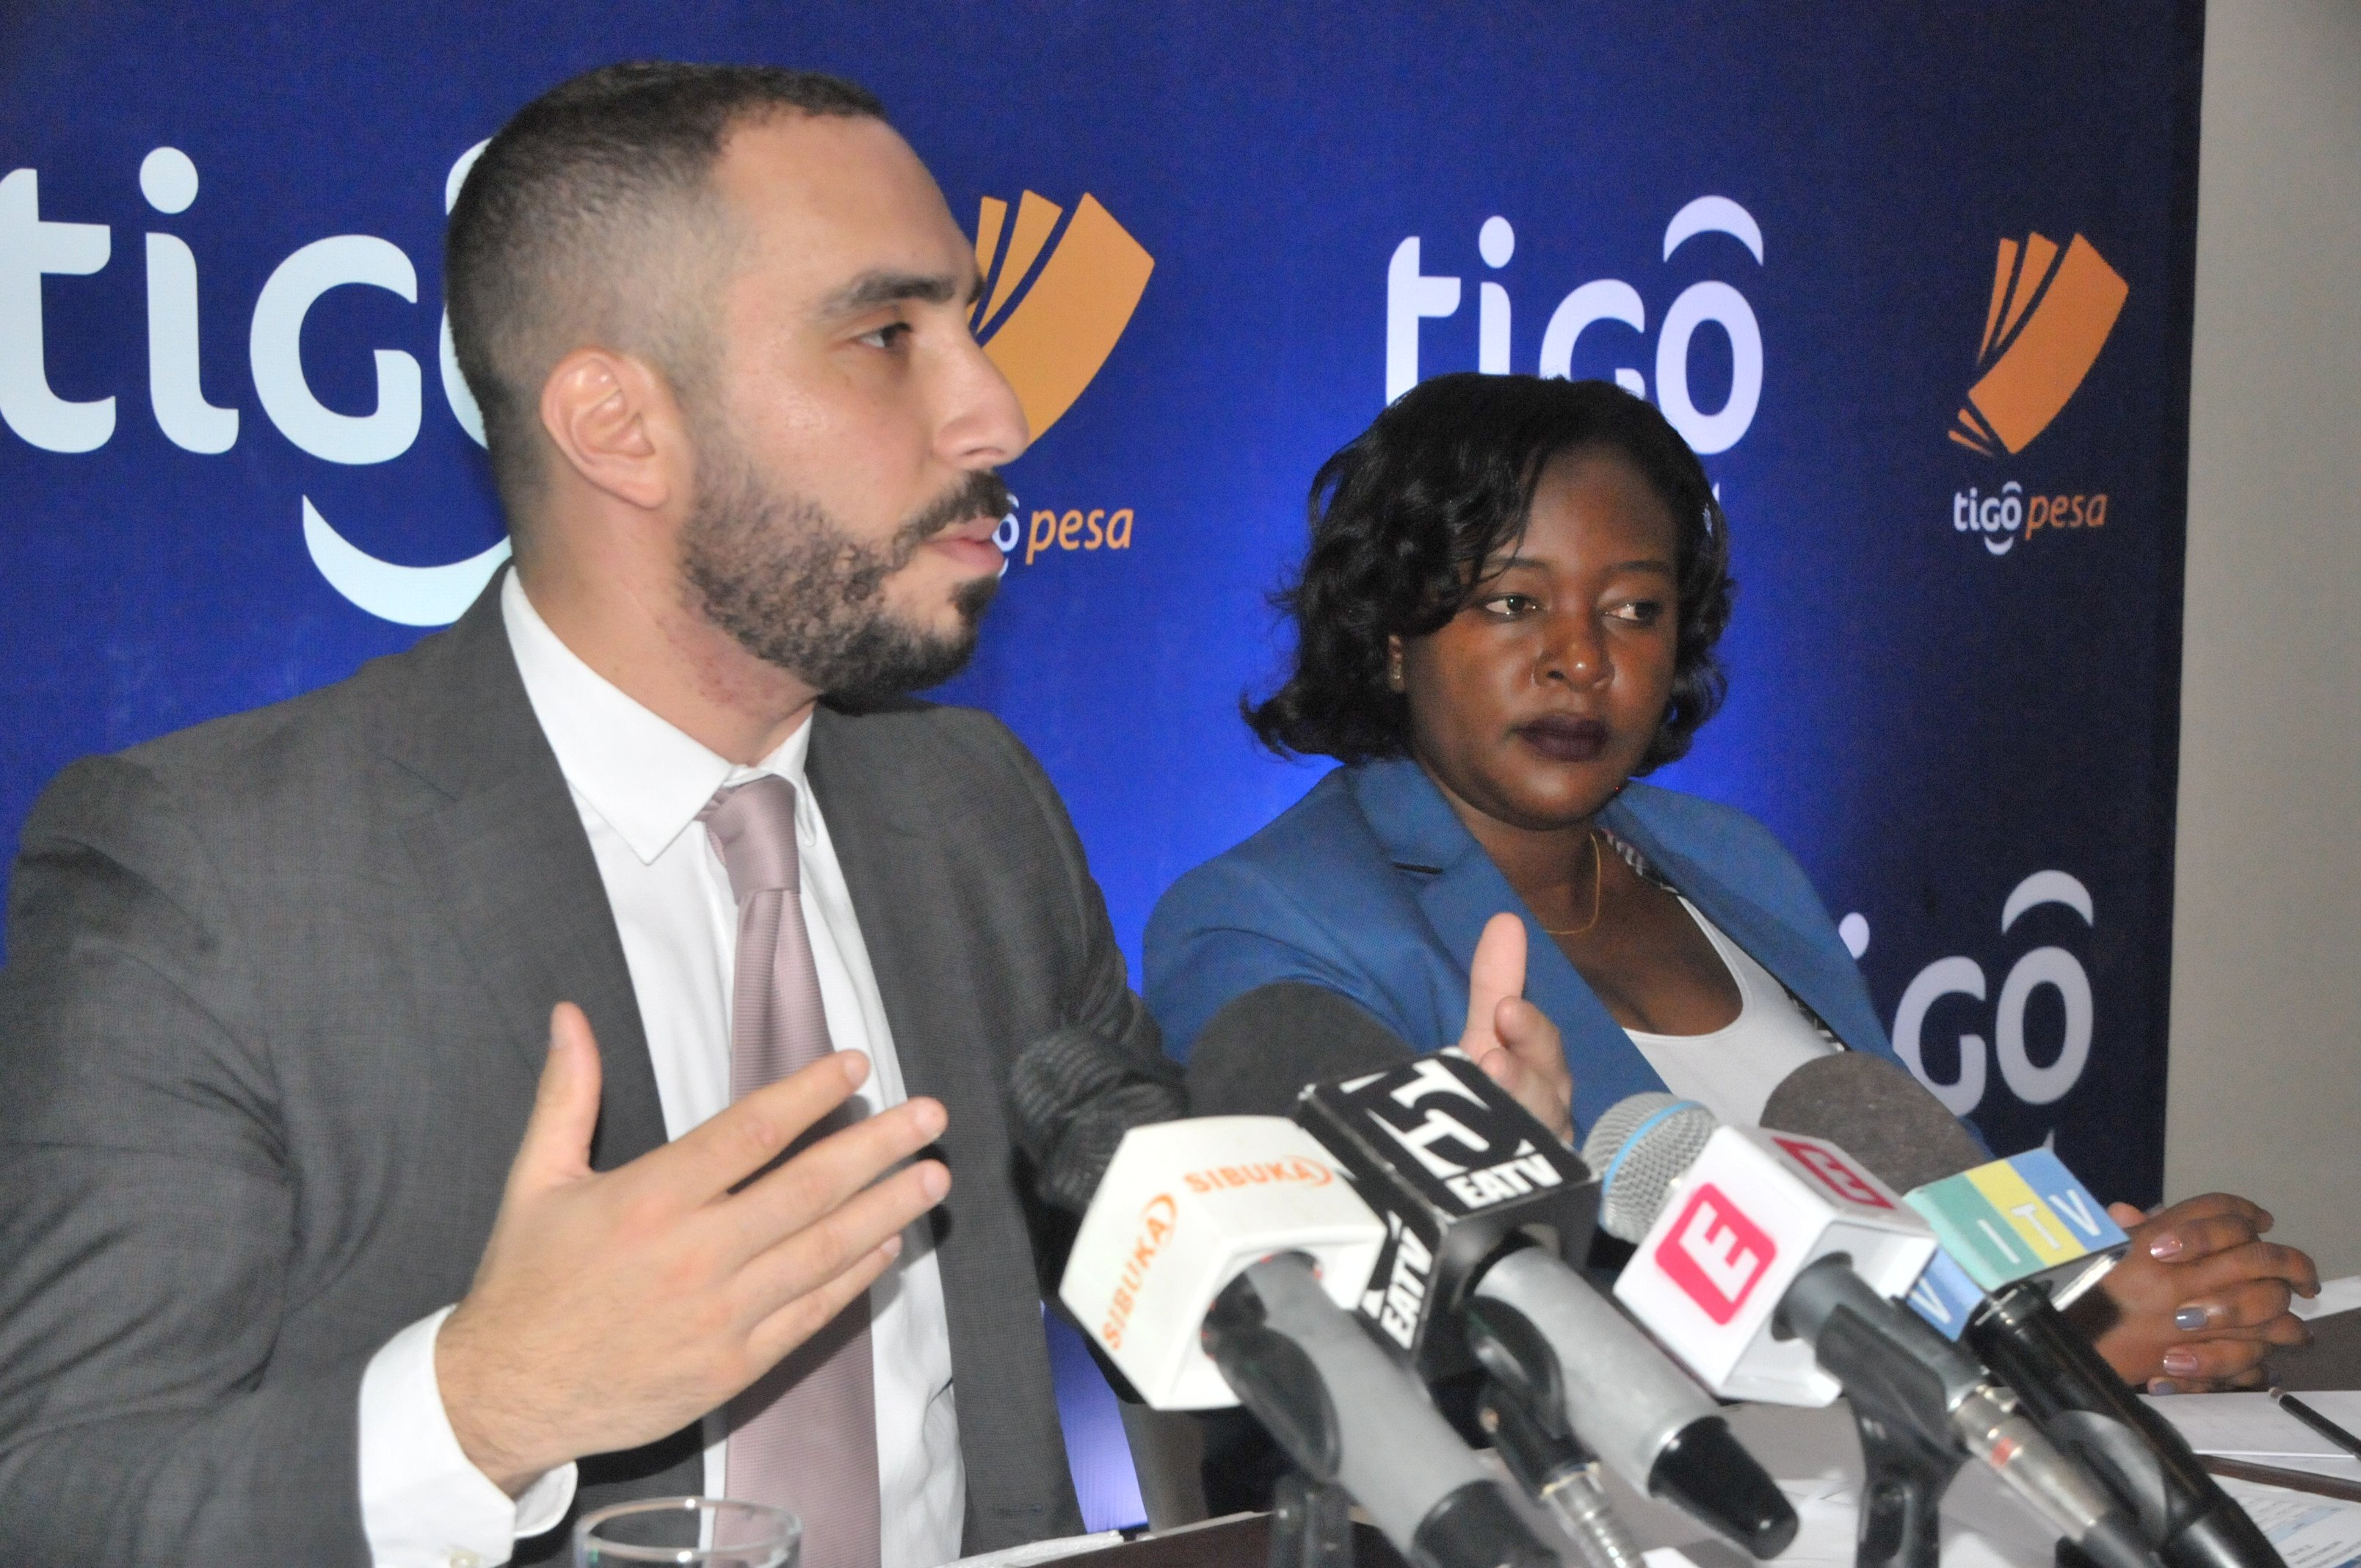 Undo app in mobile money transaction launched